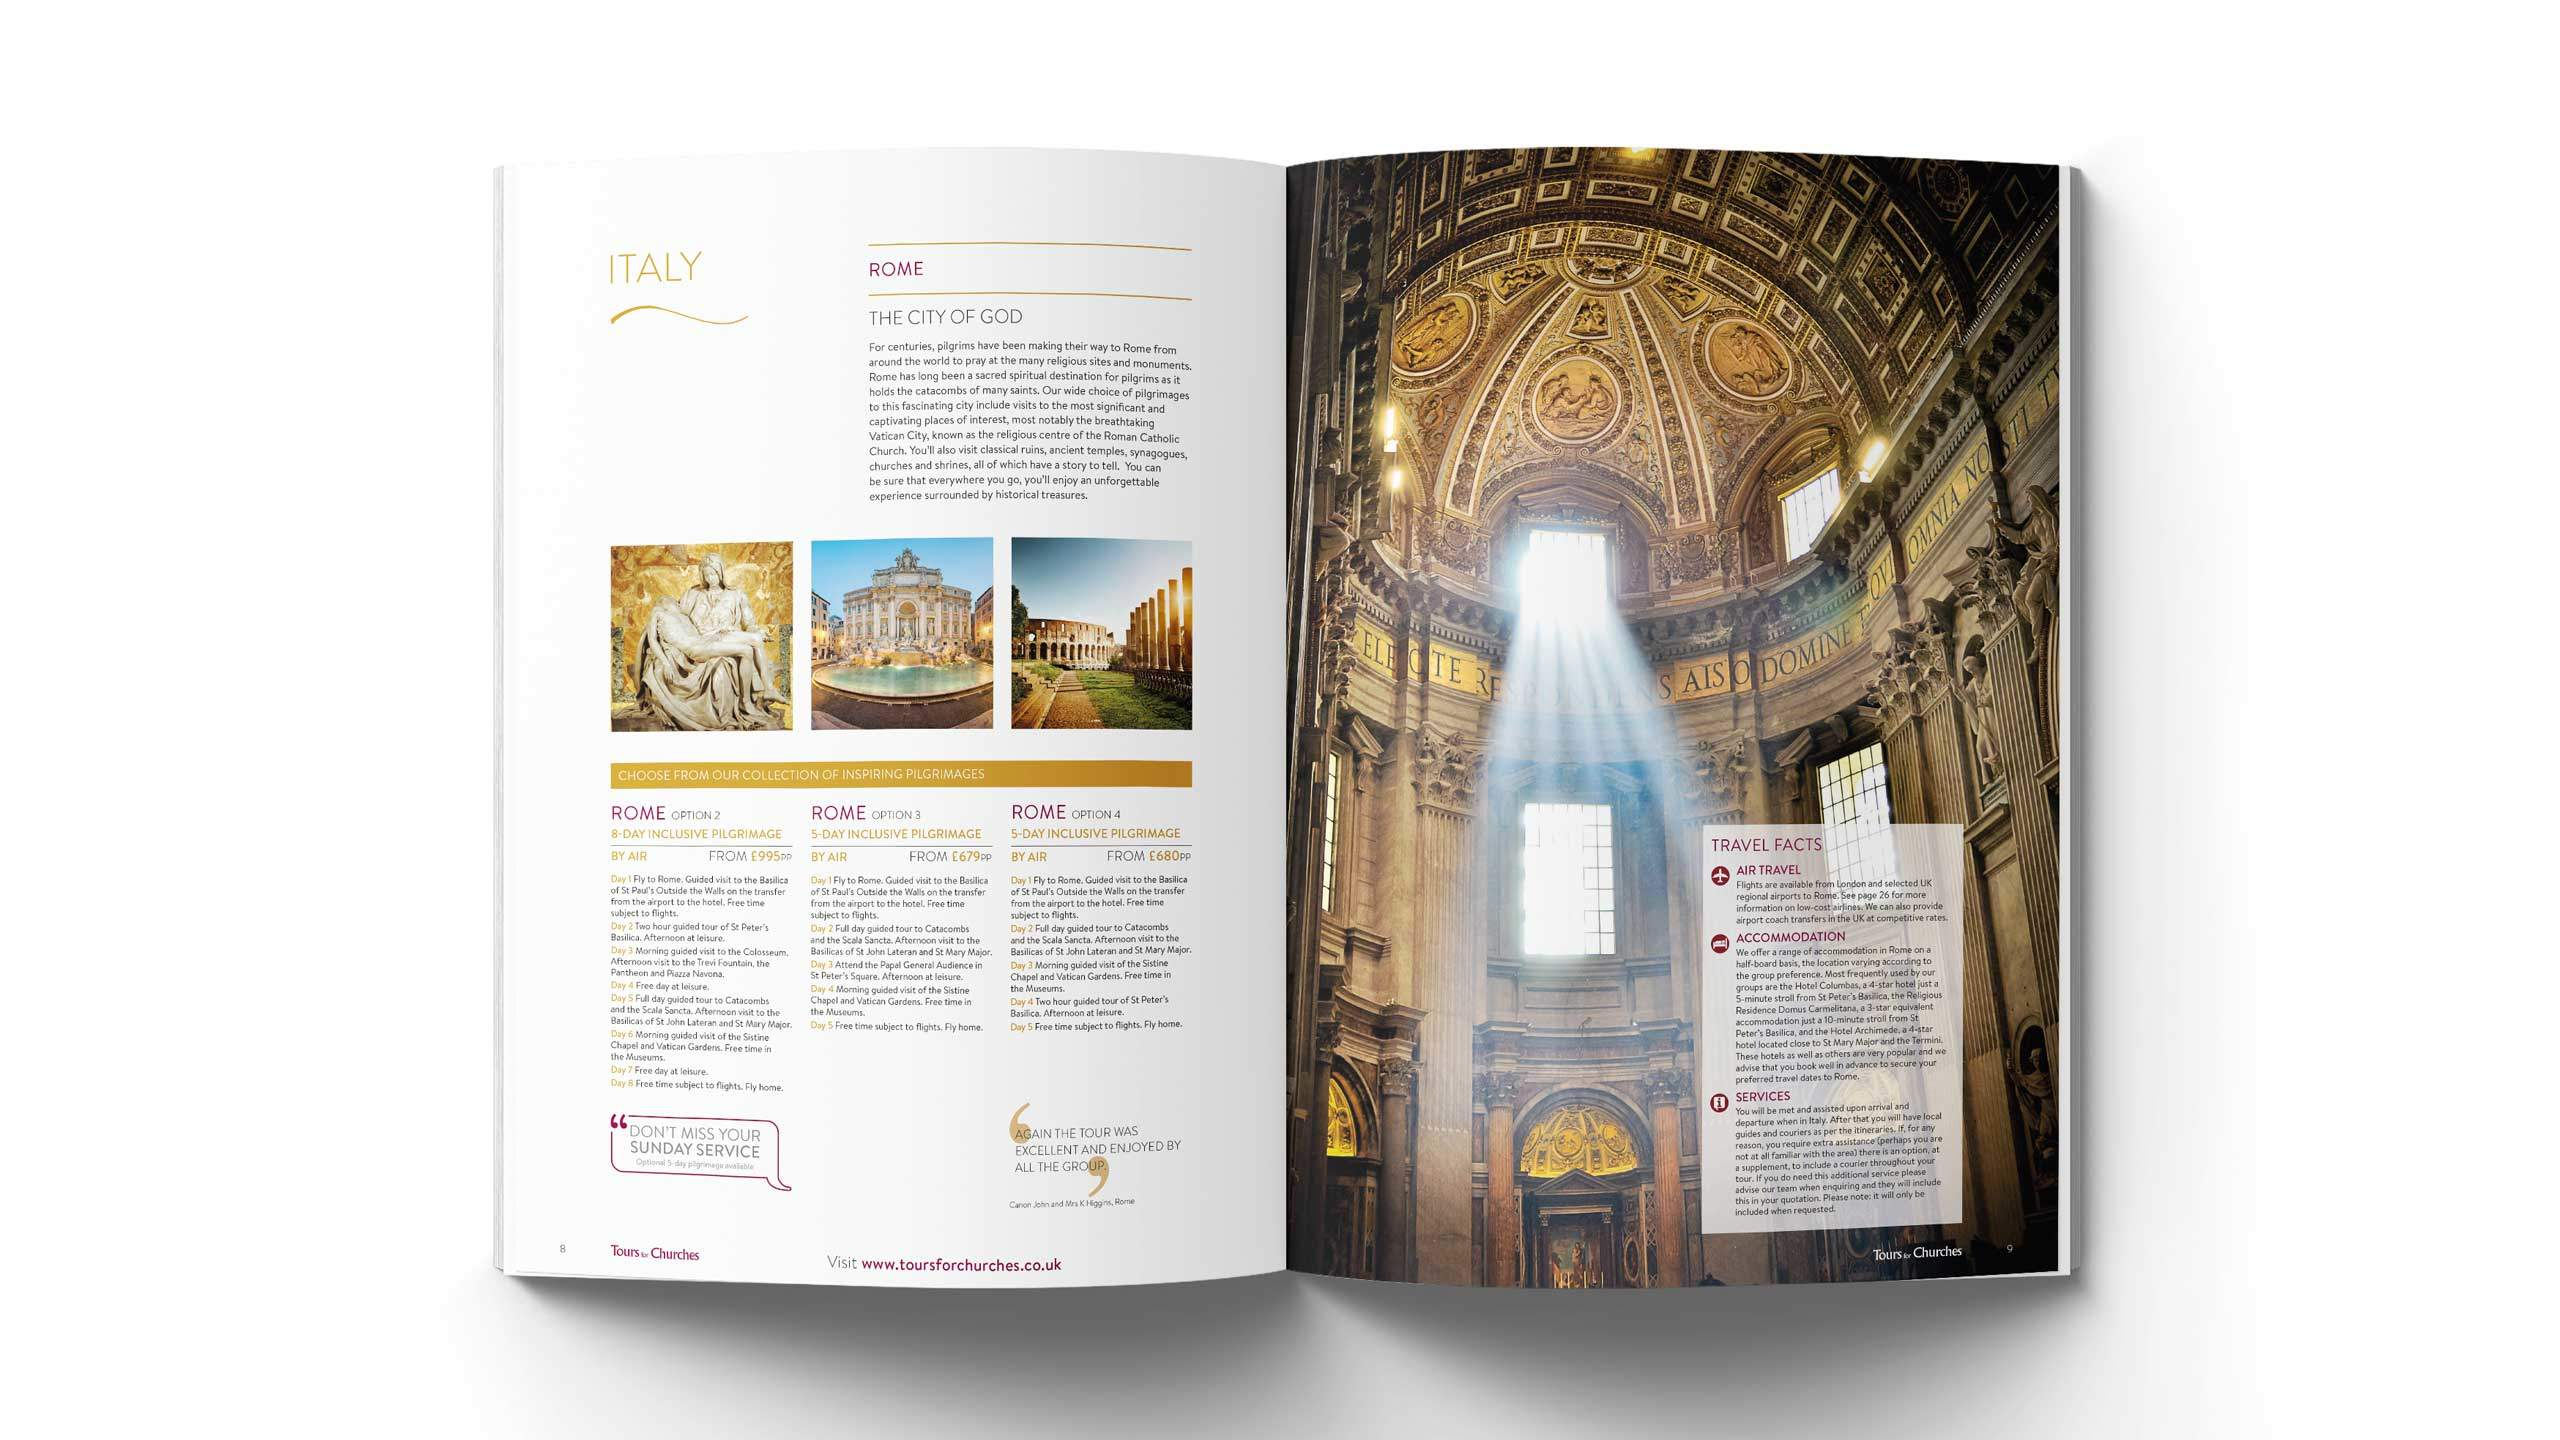 religious tours brochure design city of god pages tours for churches